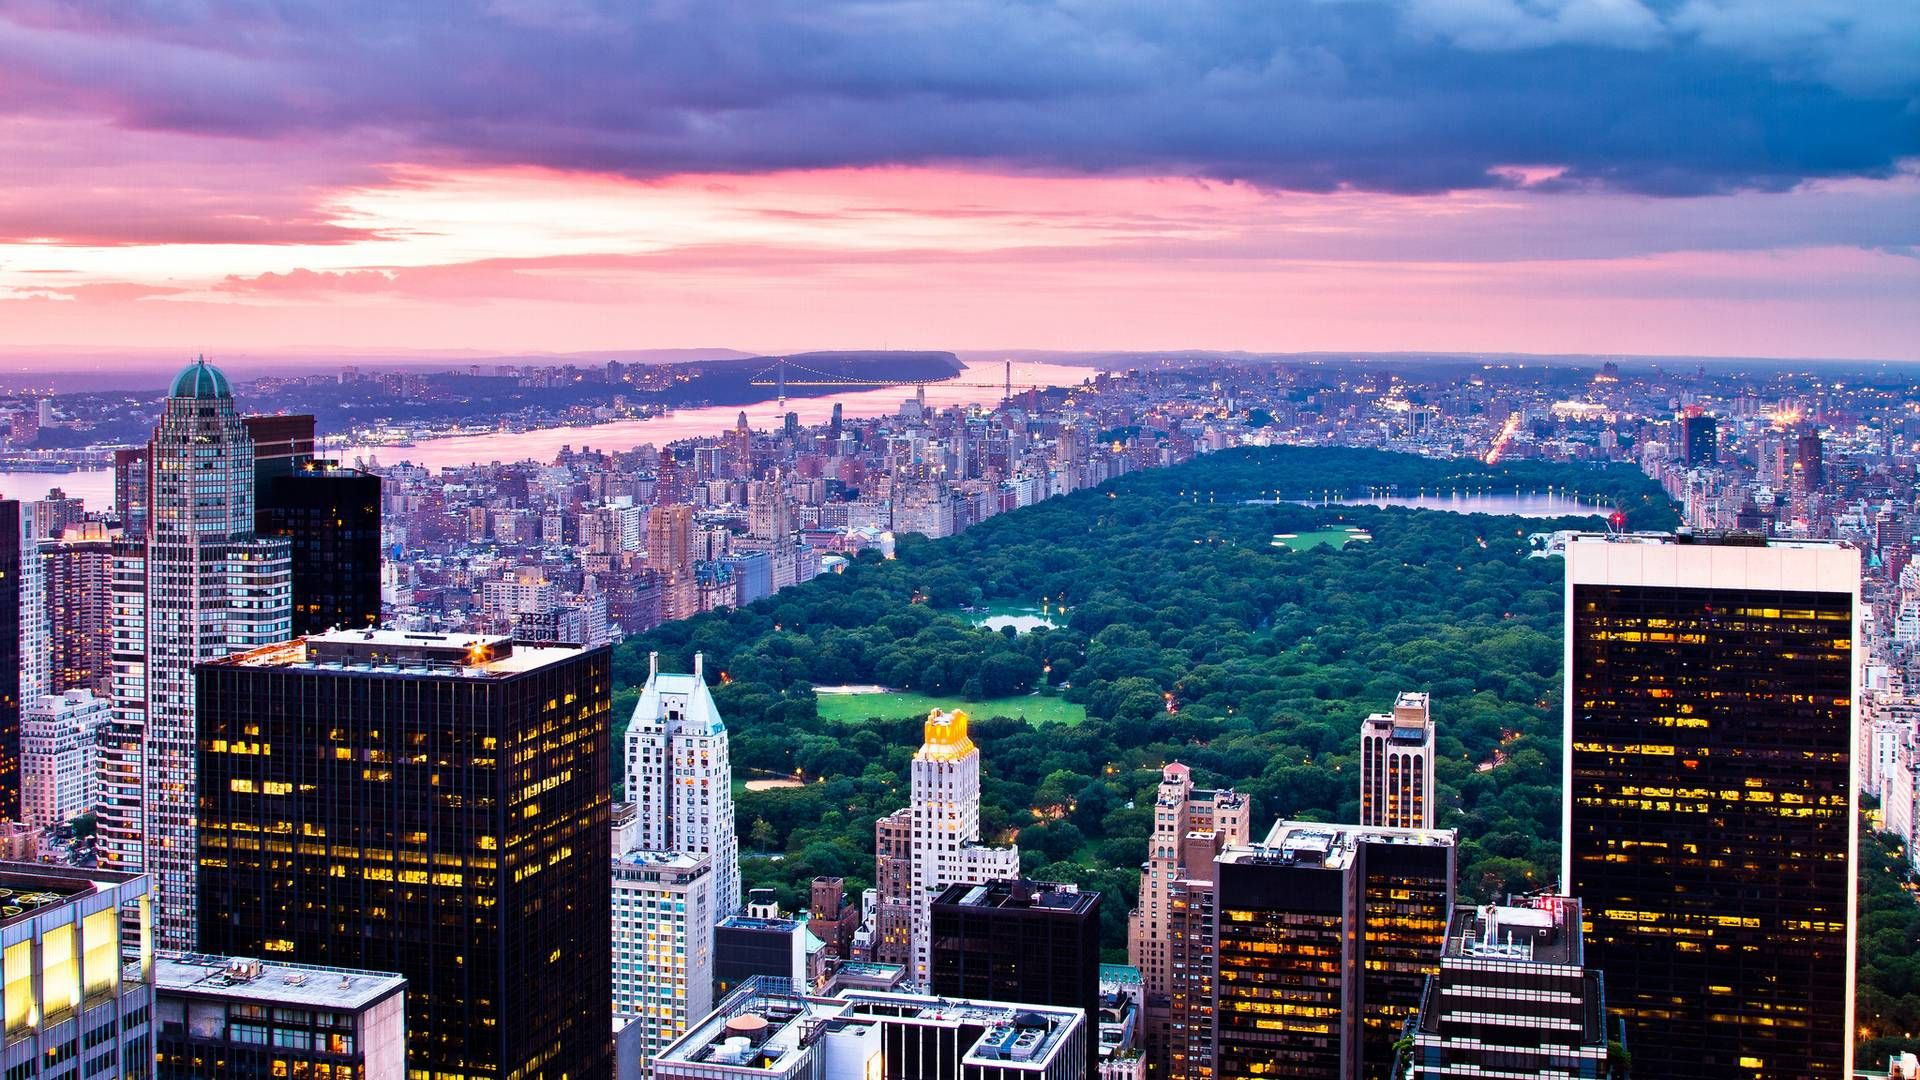 Central Park Wallpapers New York City Central Park New York City Background New York Wallpaper